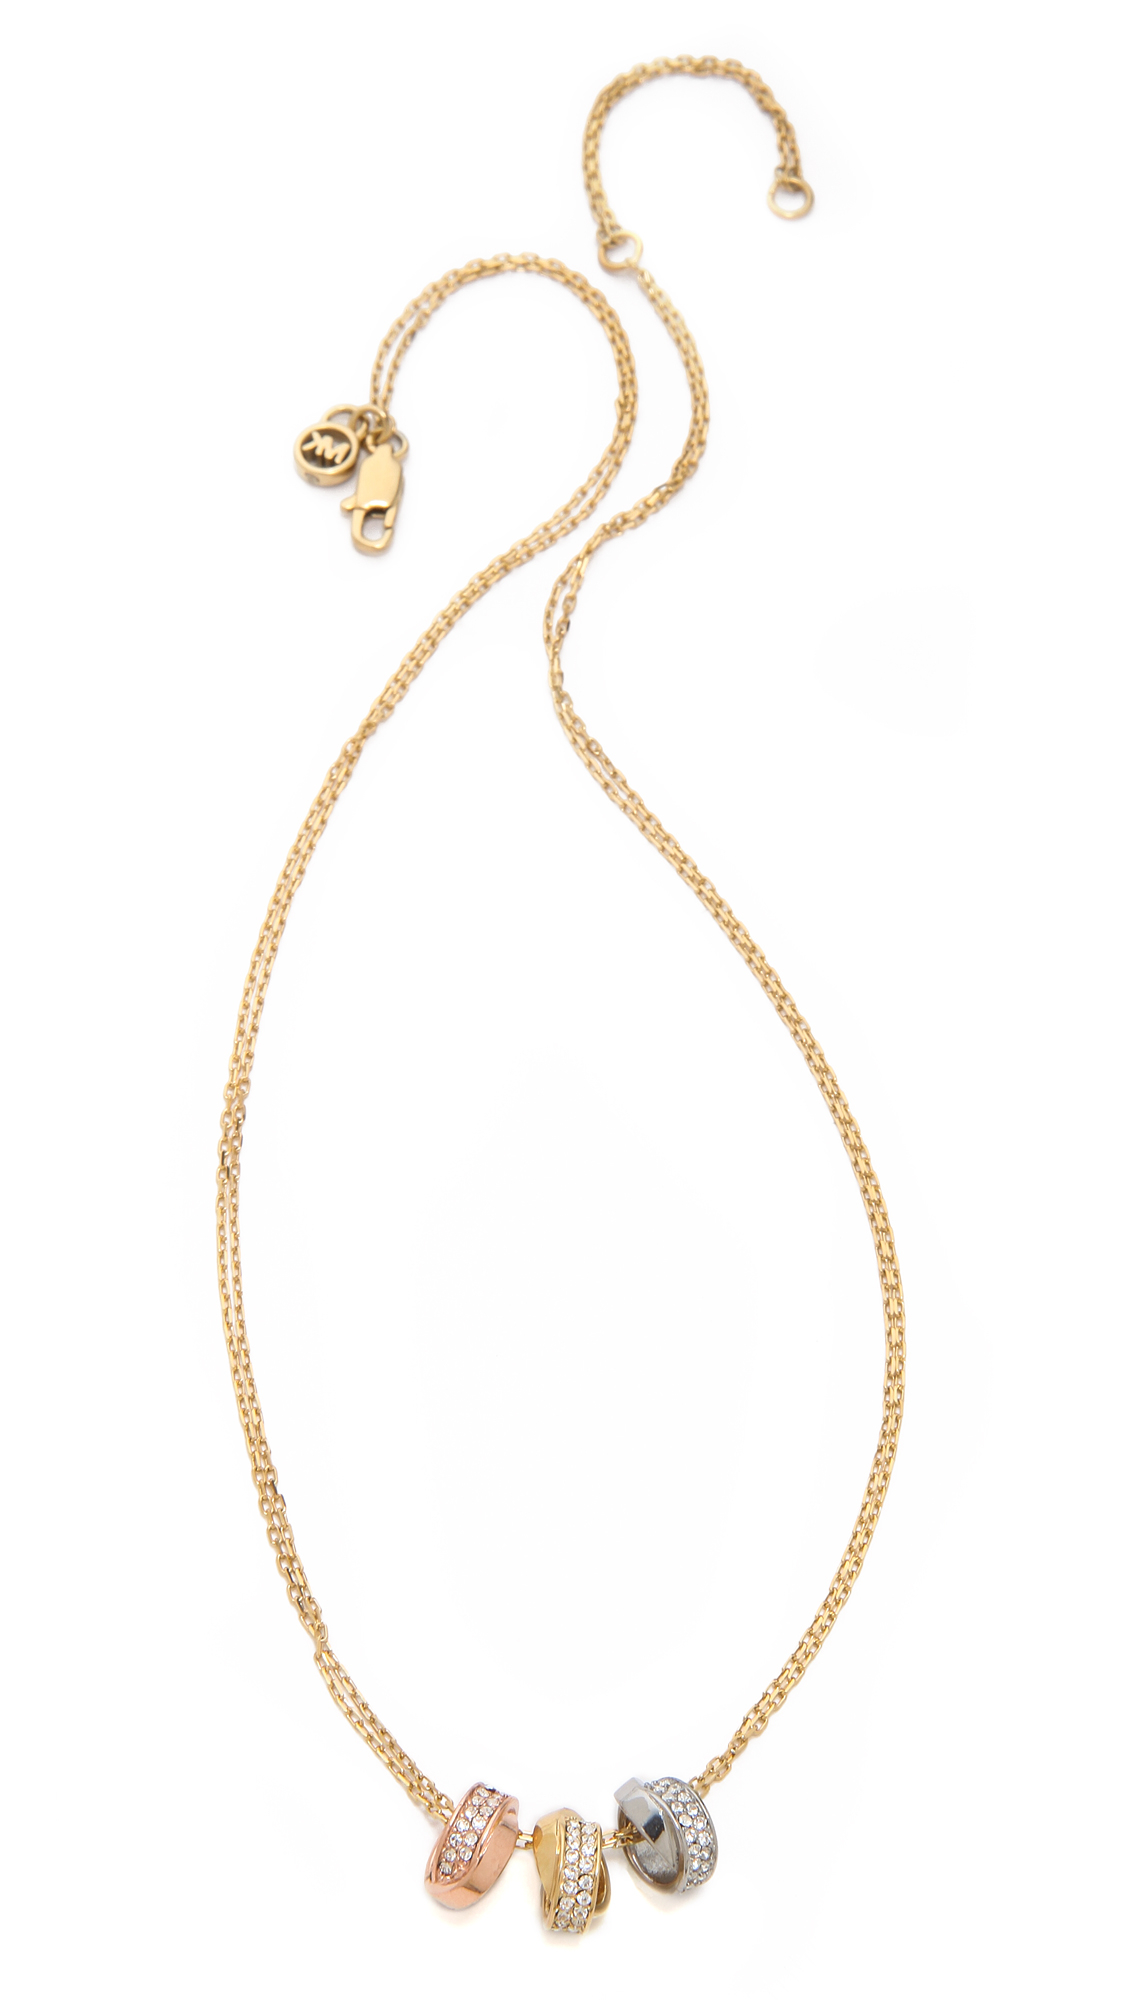 Lyst Michael Kors Pave 3 Ring Double Chain Necklace In